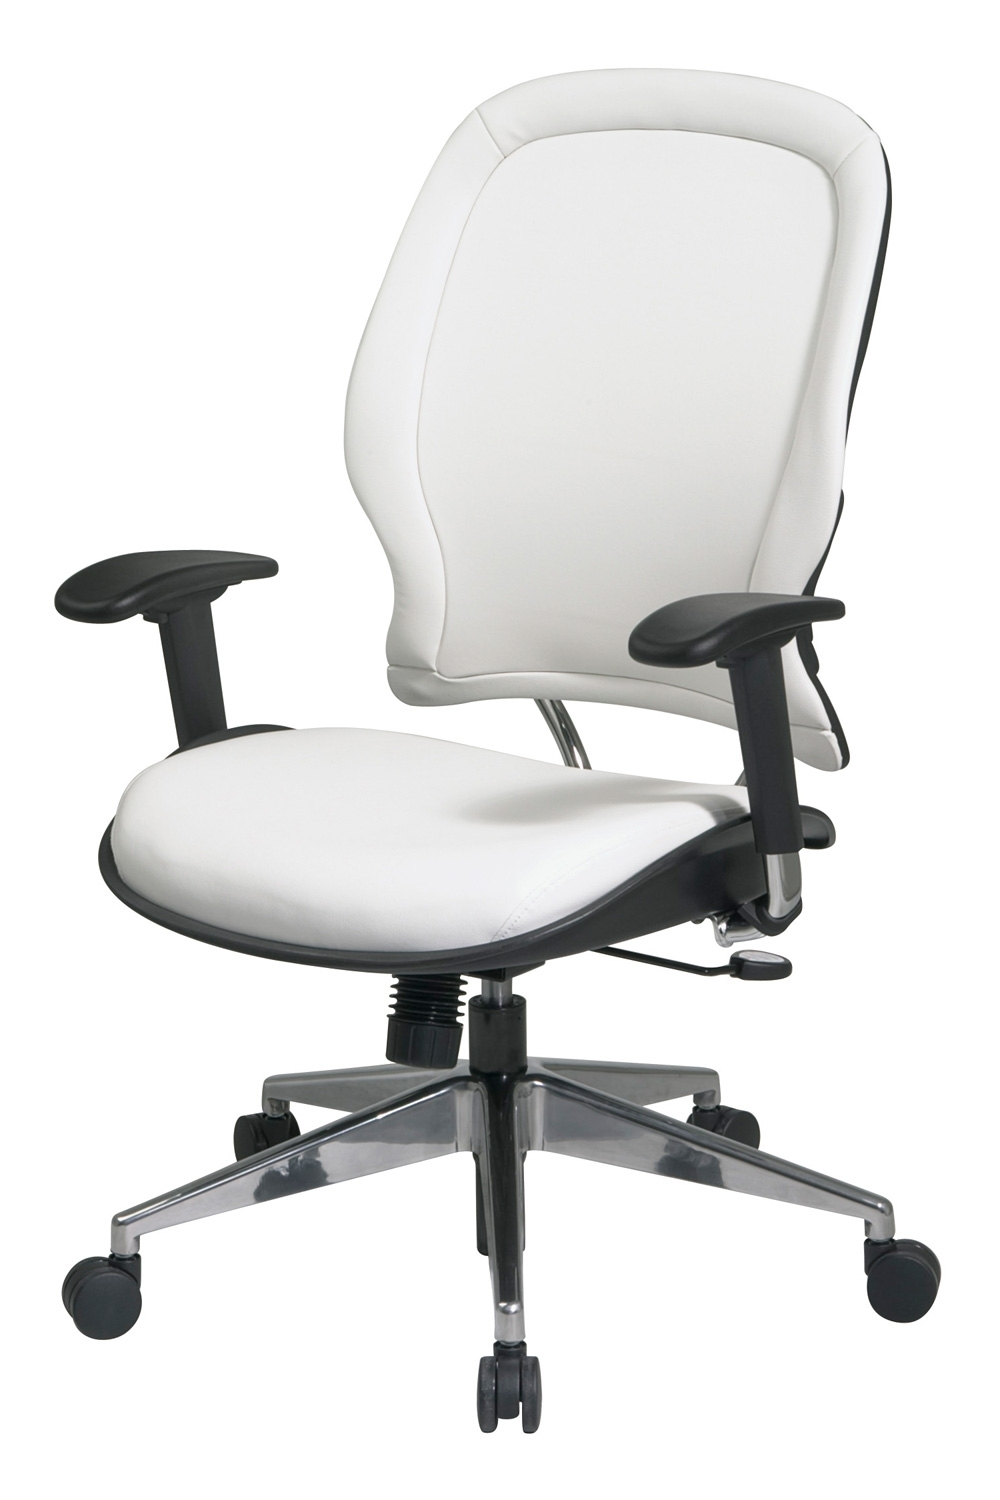 Most Recent 33 Y22p91a8 Office Star – White Vinyl Ergonomic Executive Office Intended For Ergonomic Executive Office Chairs (View 19 of 20)